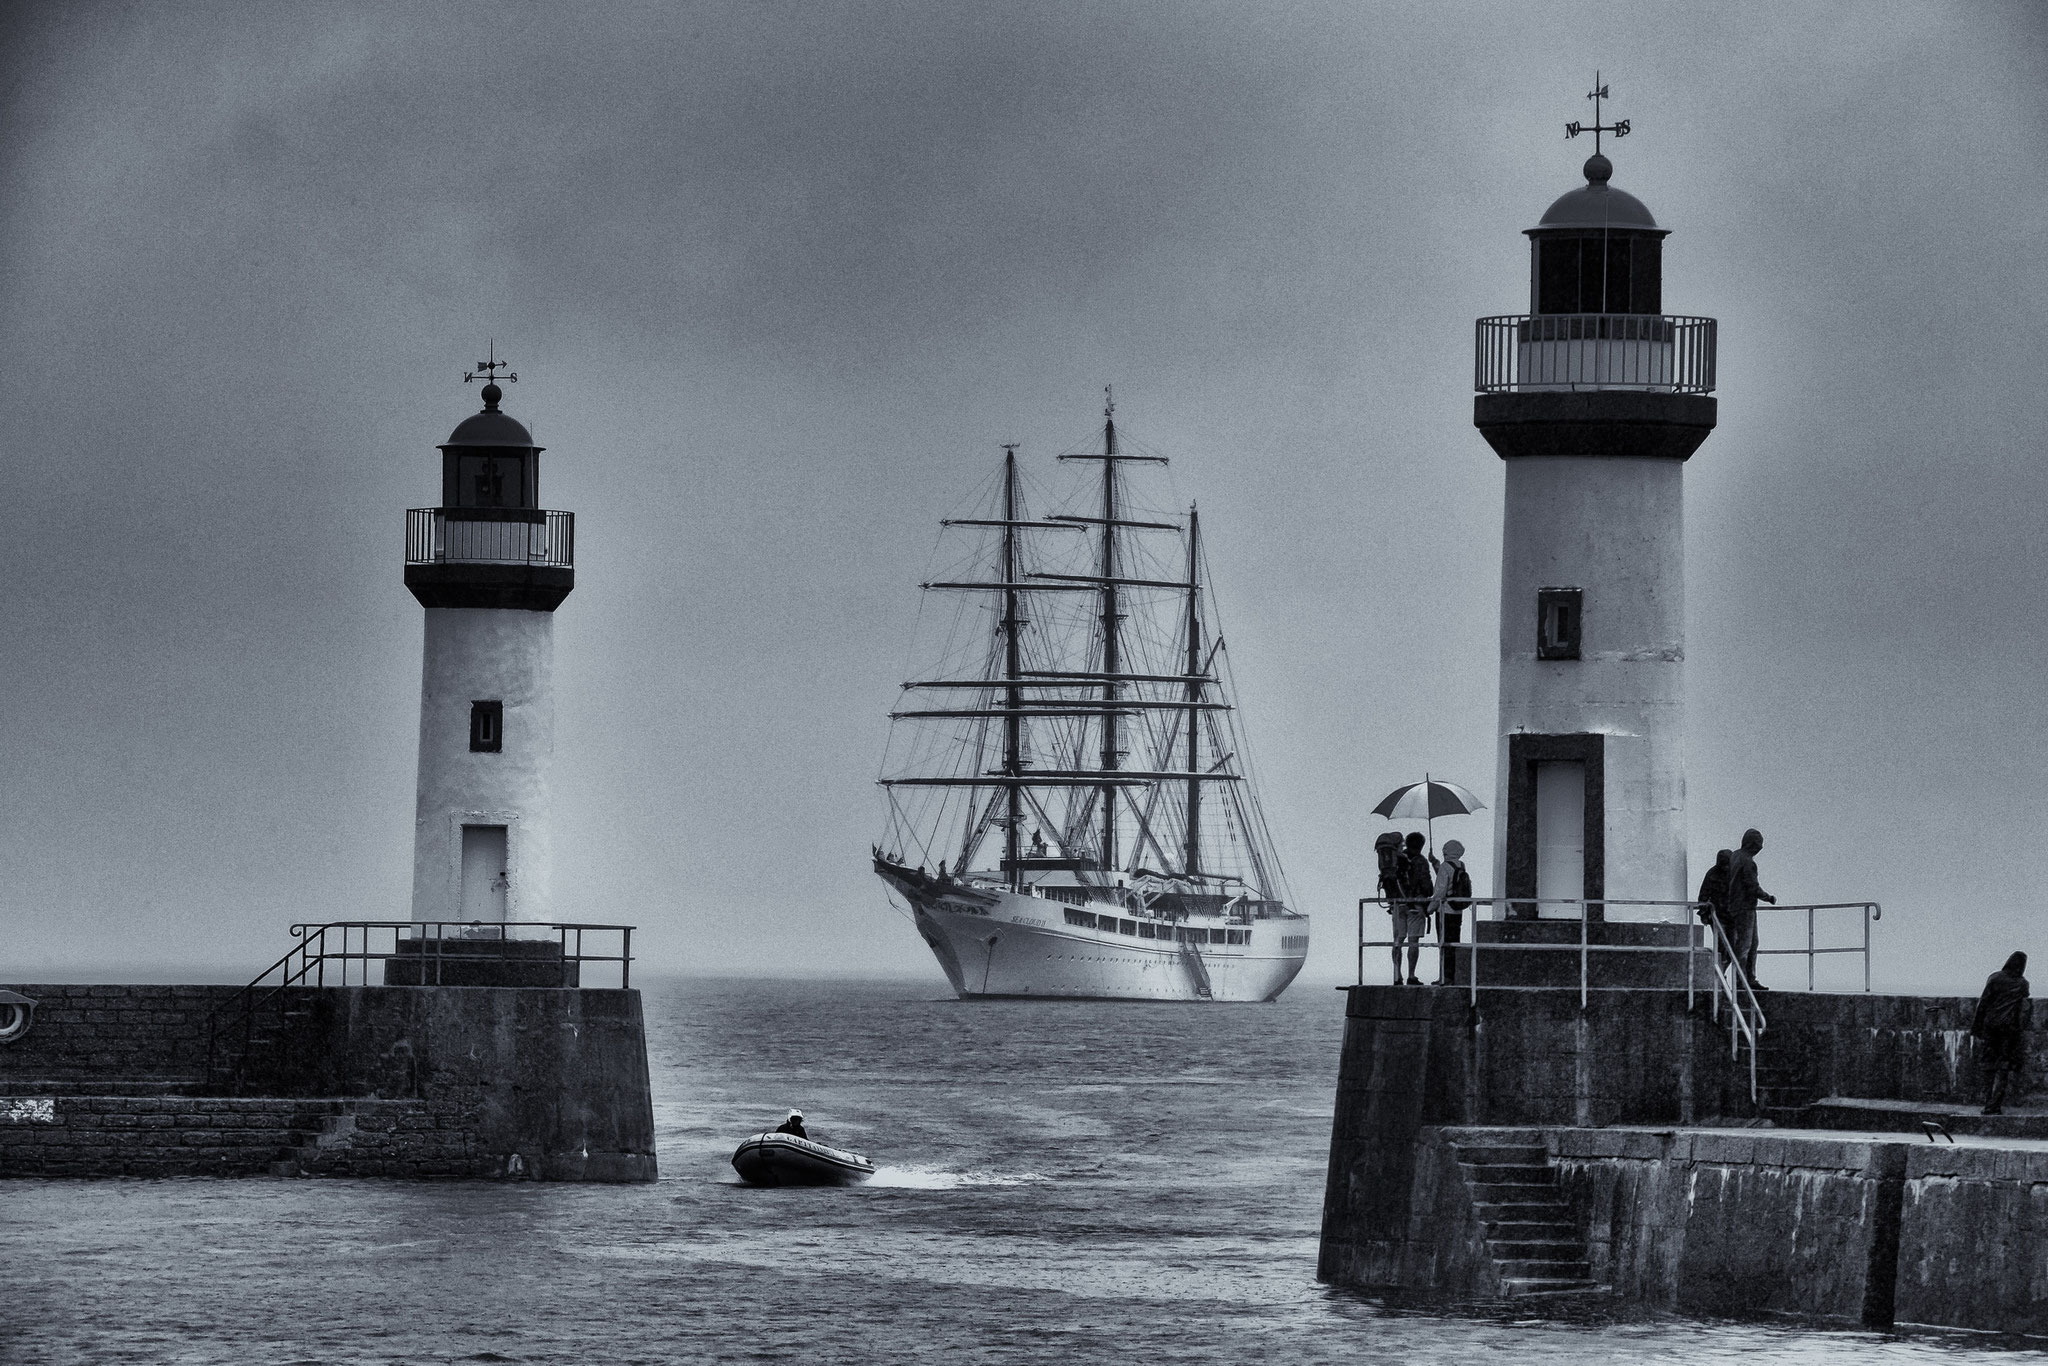 © Hans G. Lehmann | Port entrance Le Palais/Belle-Ile-en-Mer with tall ship Sea Cloud II, France